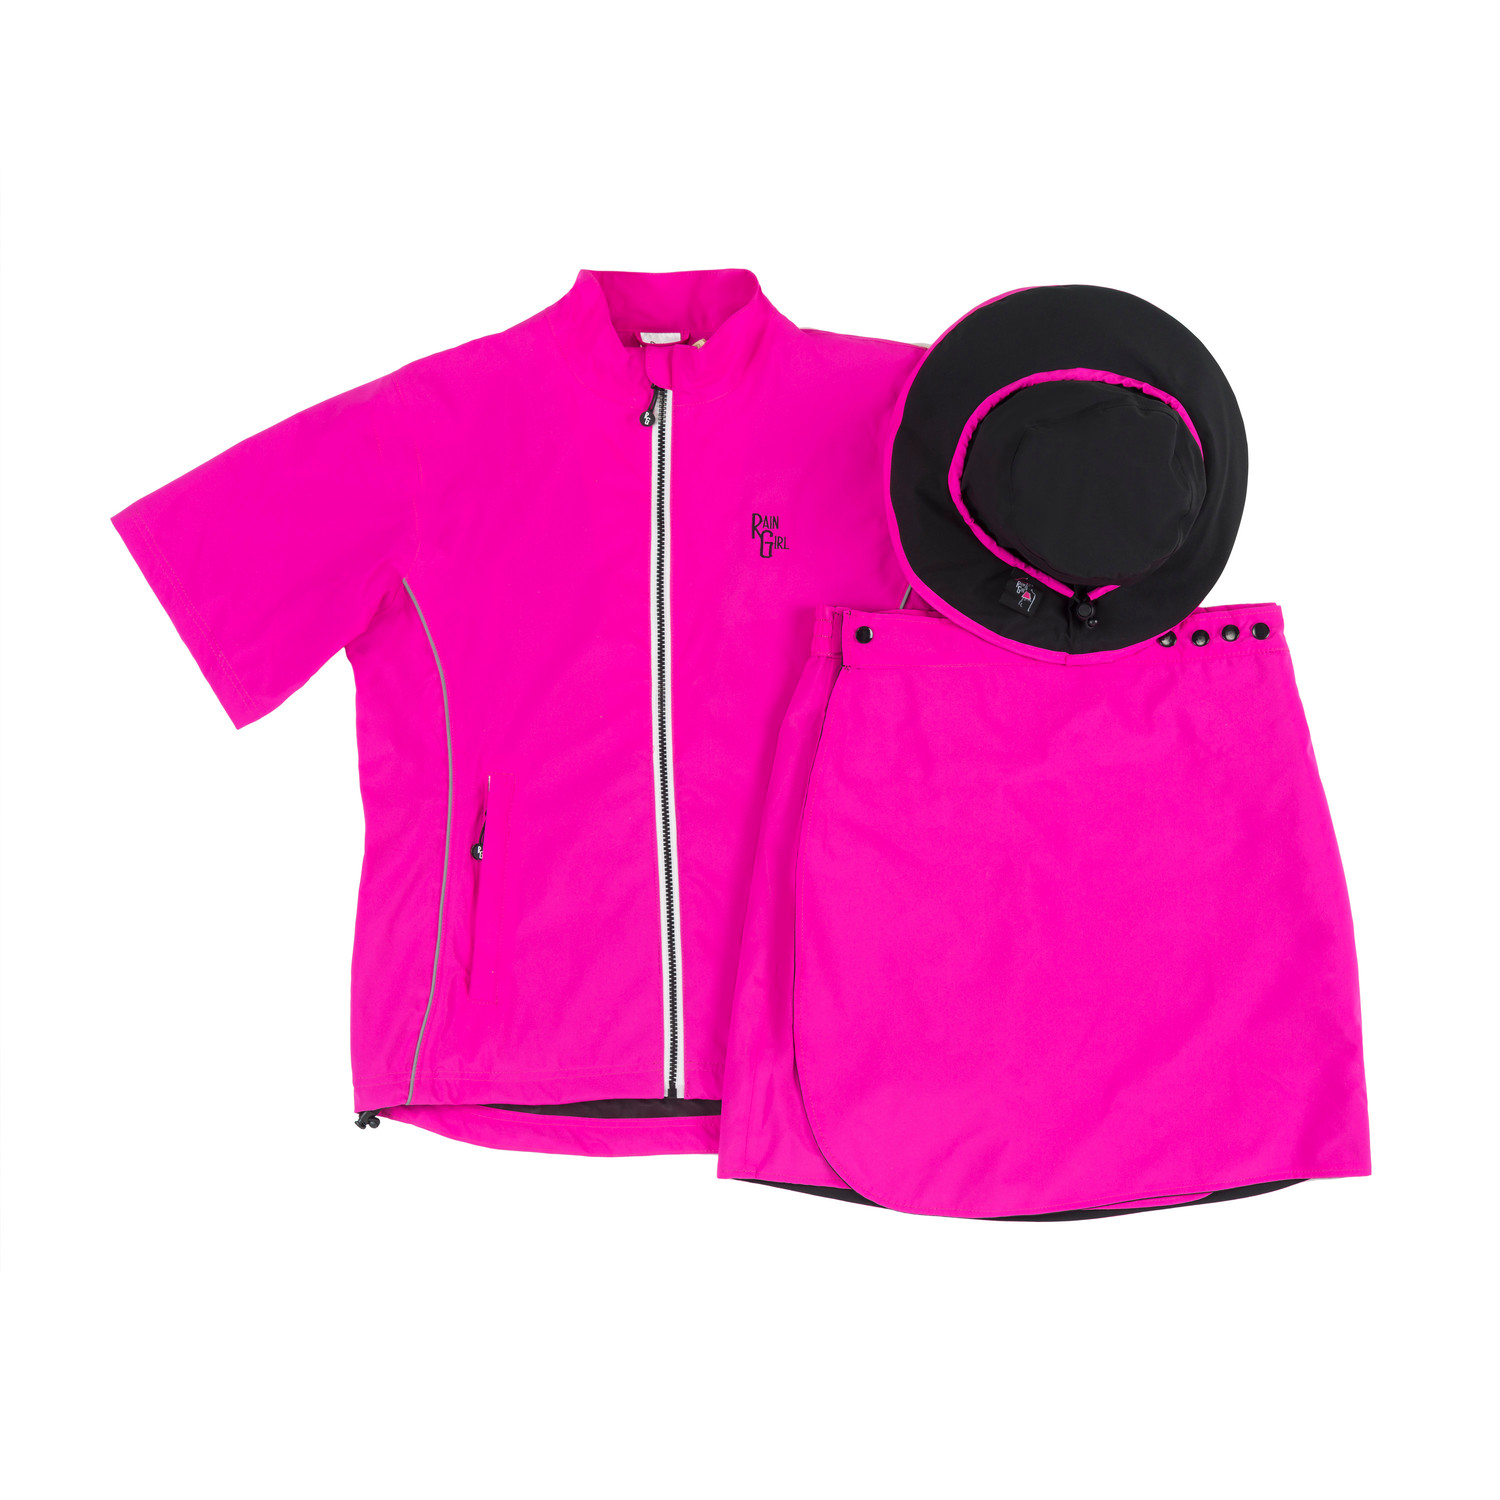 Rain Girl golf wear for women